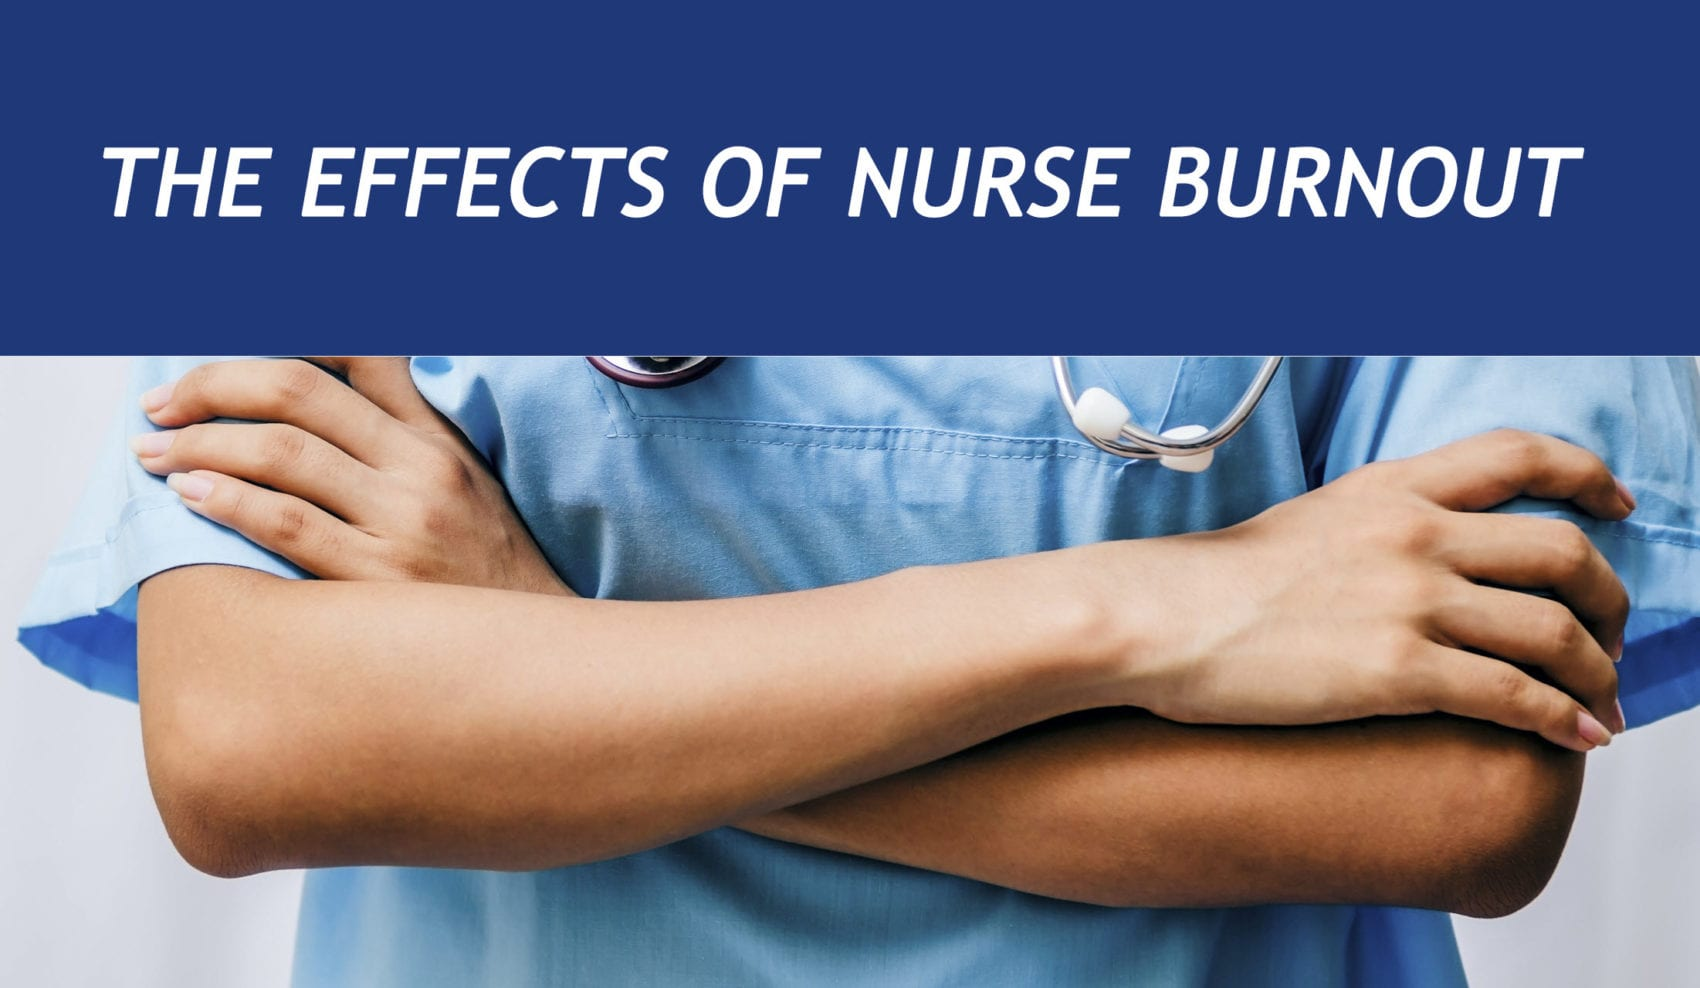 The effects of nurse burnout: A nurse crossing her arms experiences nurse burnout.